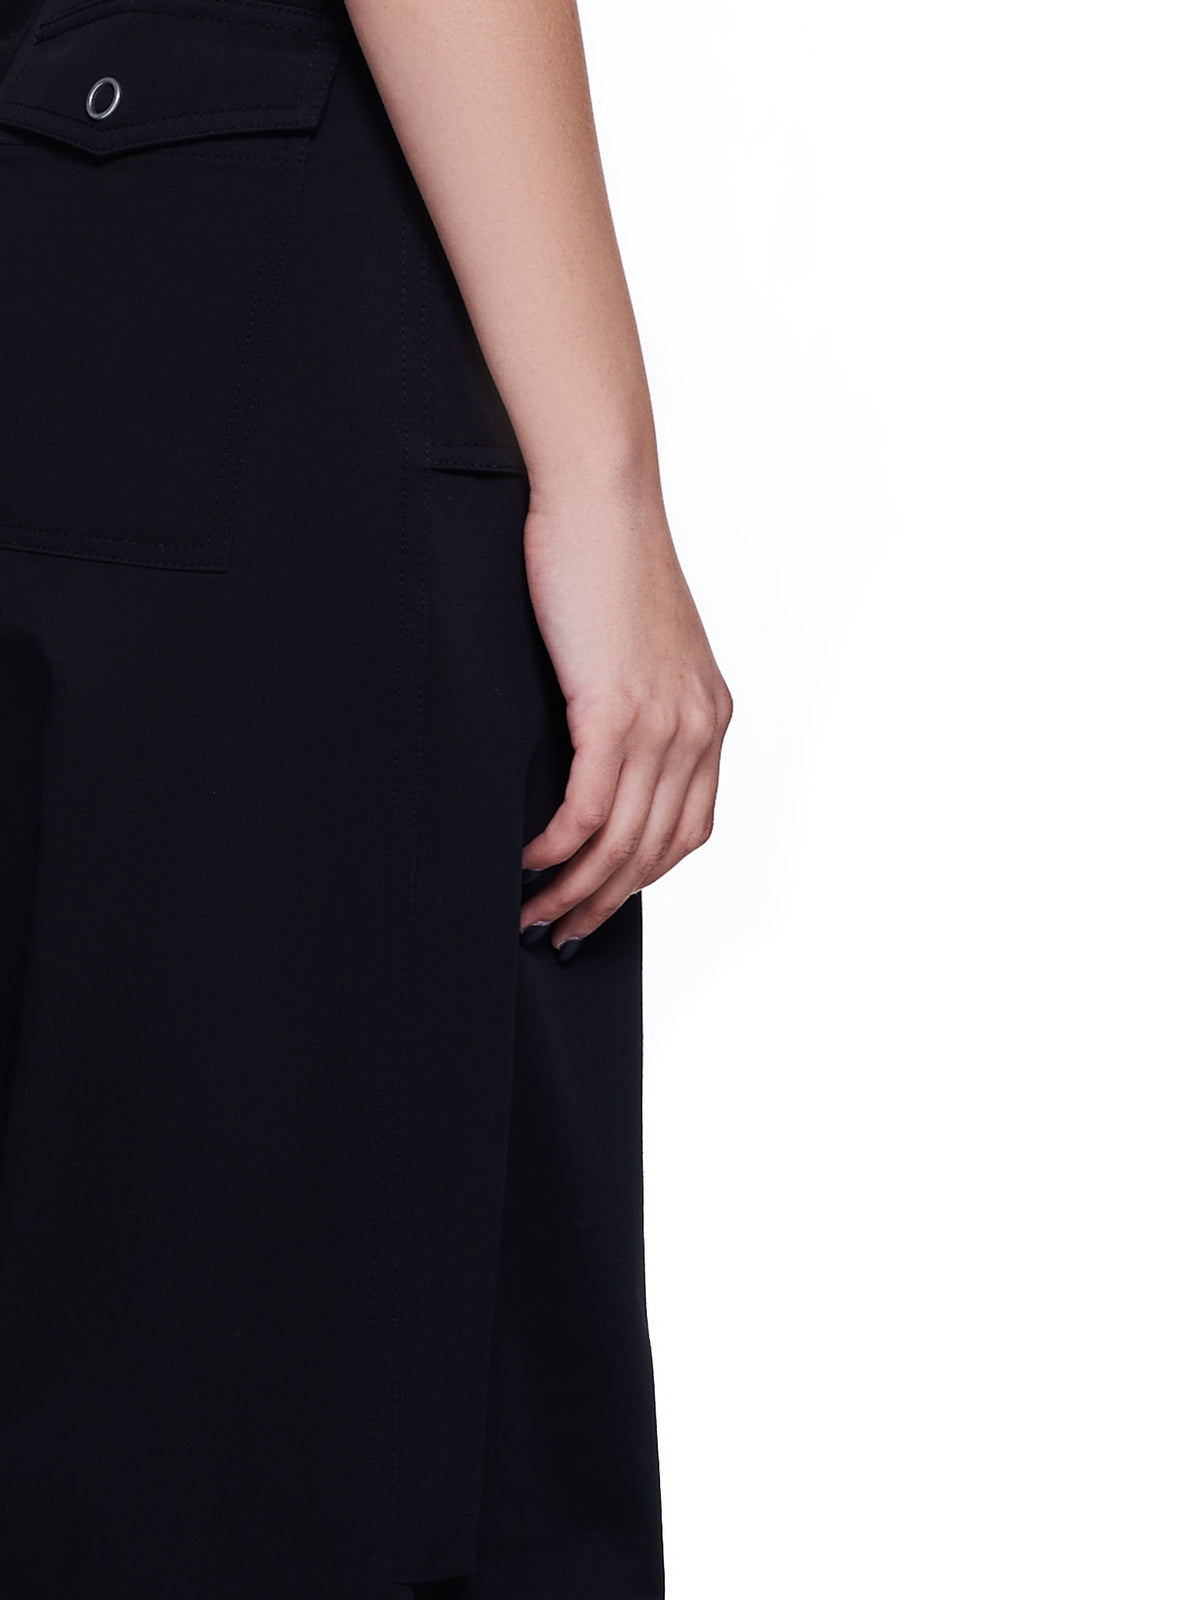 Dion Lee Trousers | H.Lorenzo - detail 2